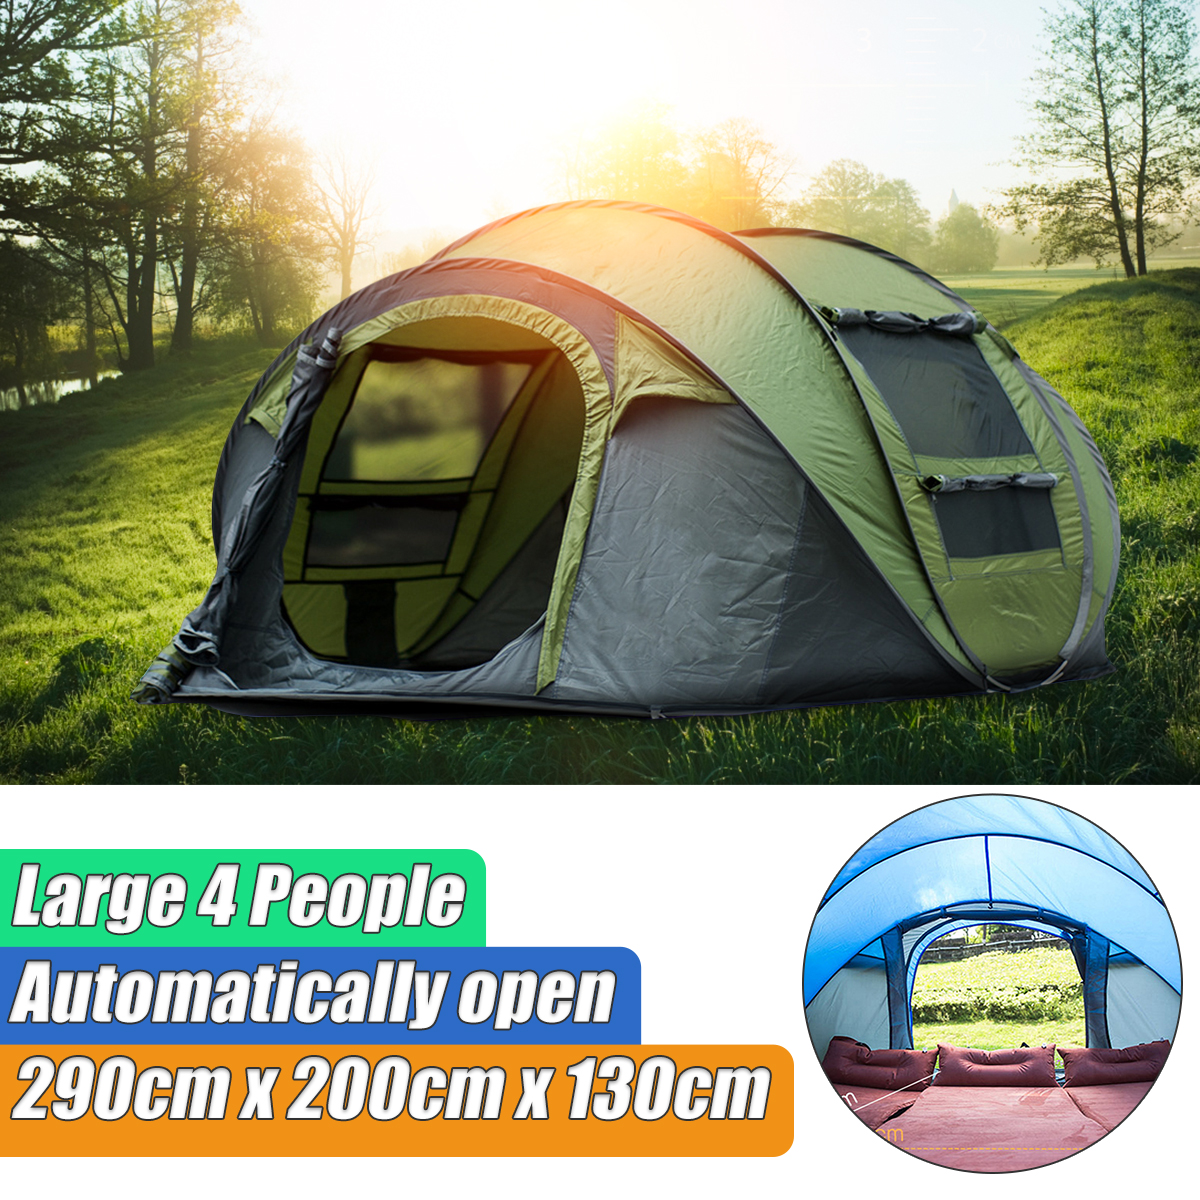 Waterproof Instant Tent Set-Up 3-4 Person Waterproof UV Protect Camping Shelter Outdoor Camping Hiking TentWaterproof Instant Tent Set-Up 3-4 Person Waterproof UV Protect Camping Shelter Outdoor Camping Hiking Tent